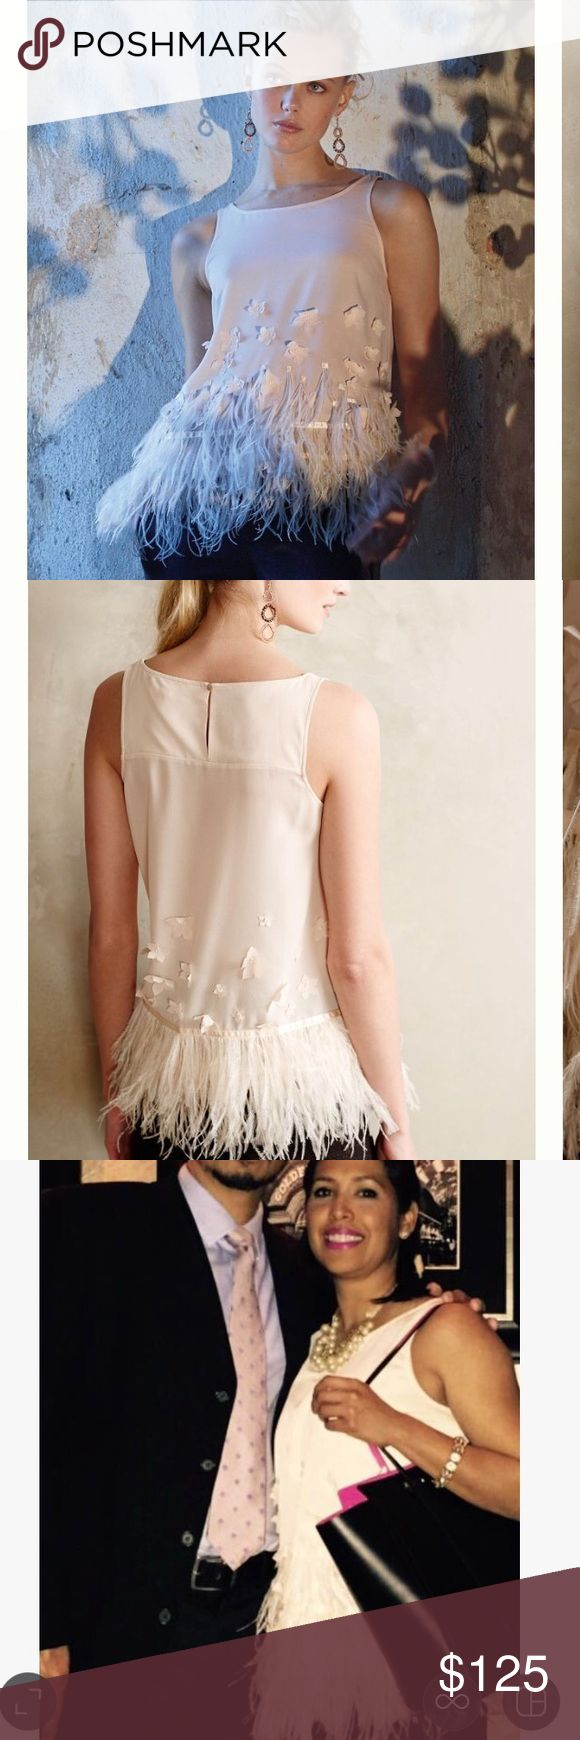 Anthropologie feathered fringe blouse. Anthropologie feathered fringe blouse. What can I say about this blouse it's amazing. Only worn once. I will post more pics and measurements this evening. Sold out hard to get your hands on. Anthropologie Tops Blouses